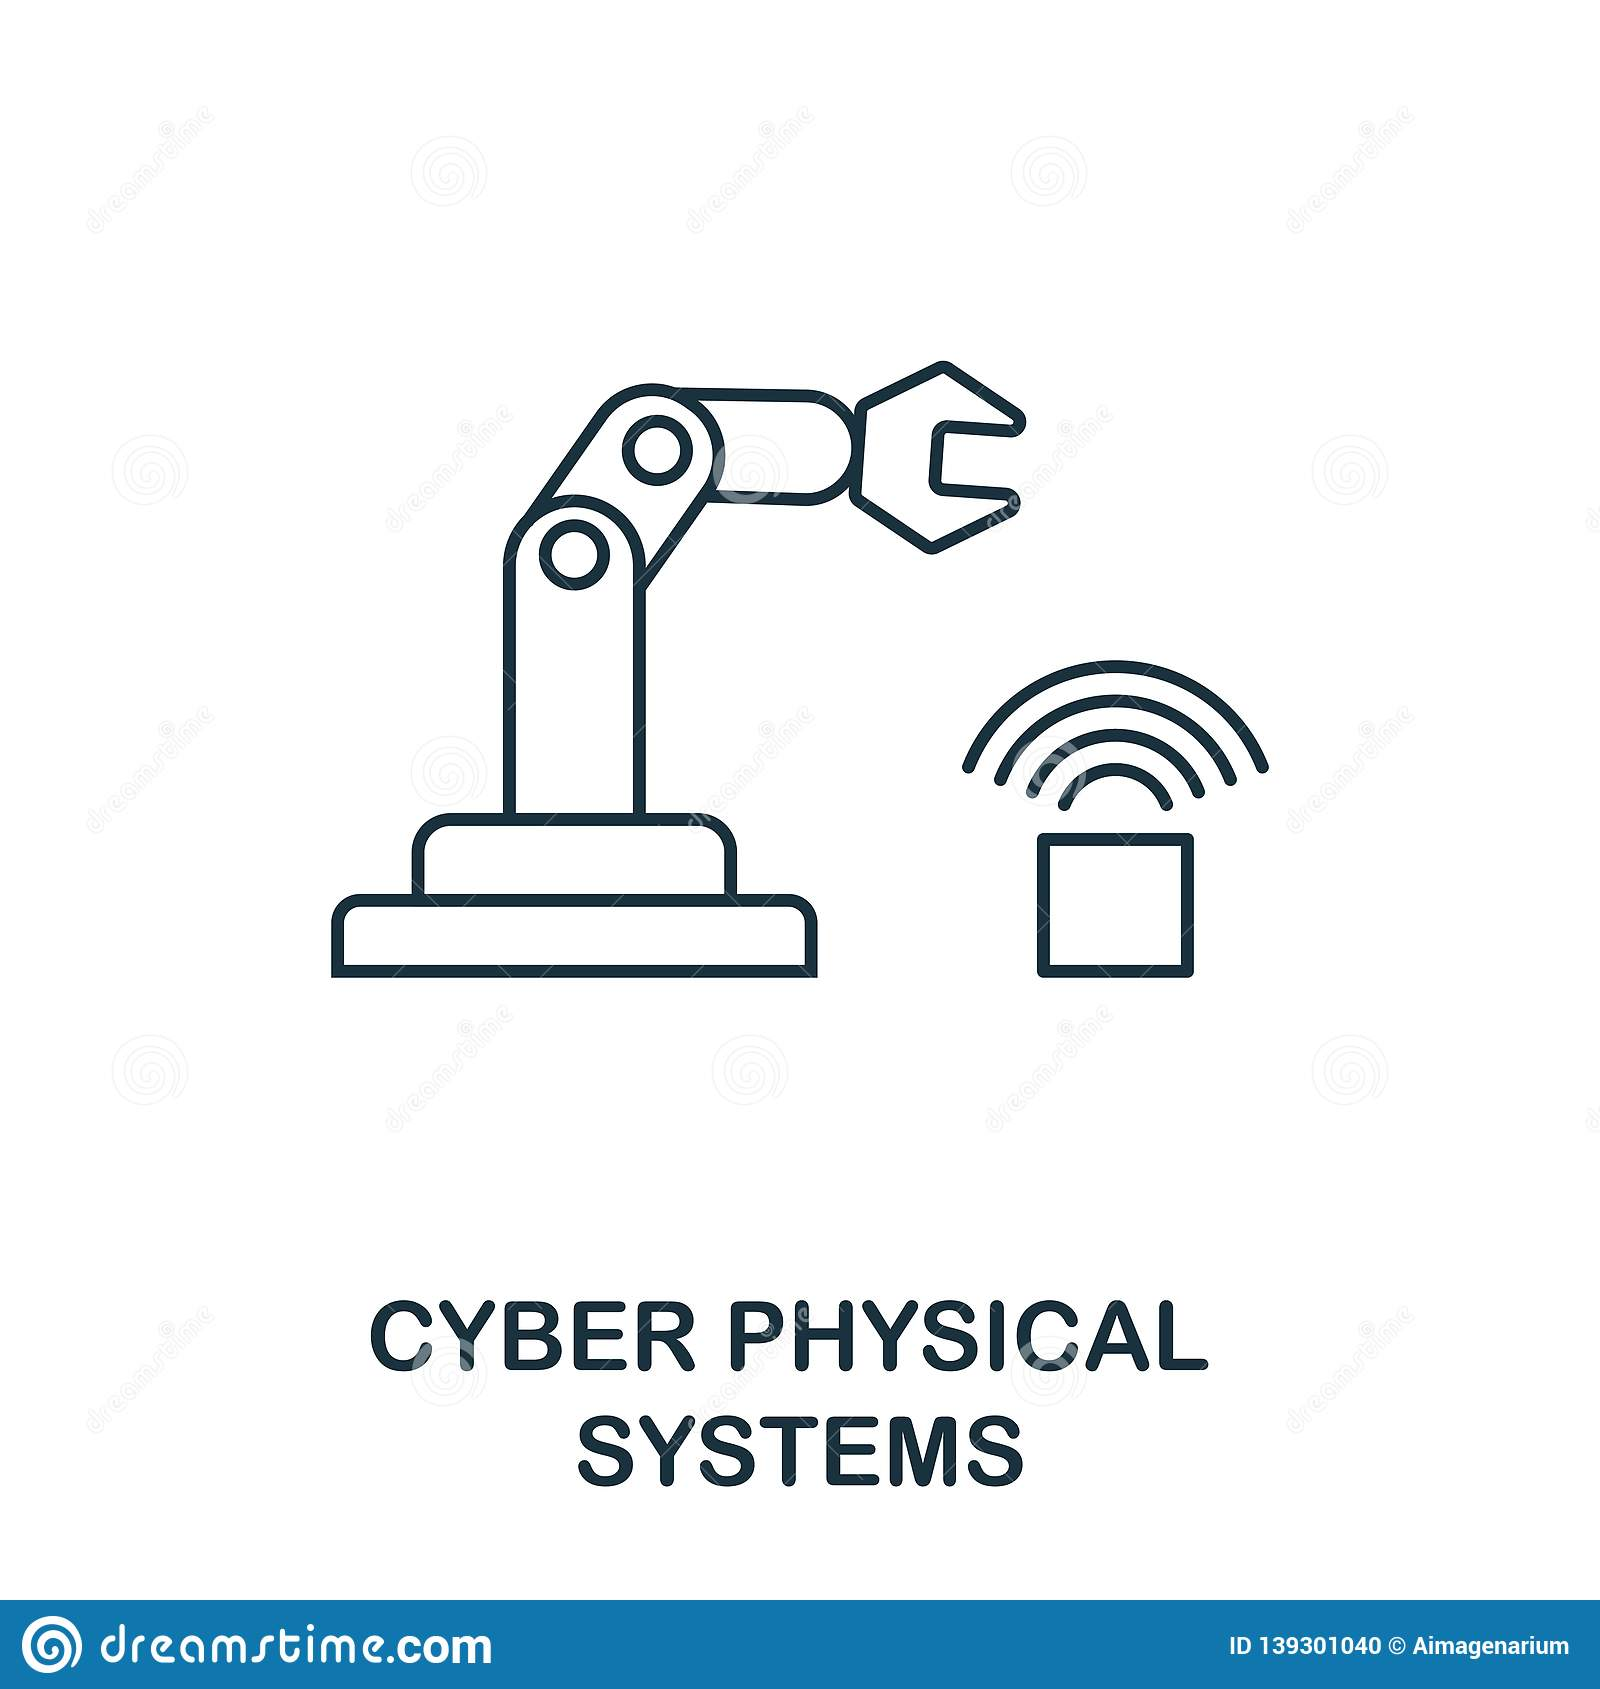 Cyber Physical Systems Icon Thin Line Style Industry 4 0 Icons Collection Ui And Ux Pixel Perfect Cyber Physical Stock Vector Illustration Of Automation Cyber 139301040